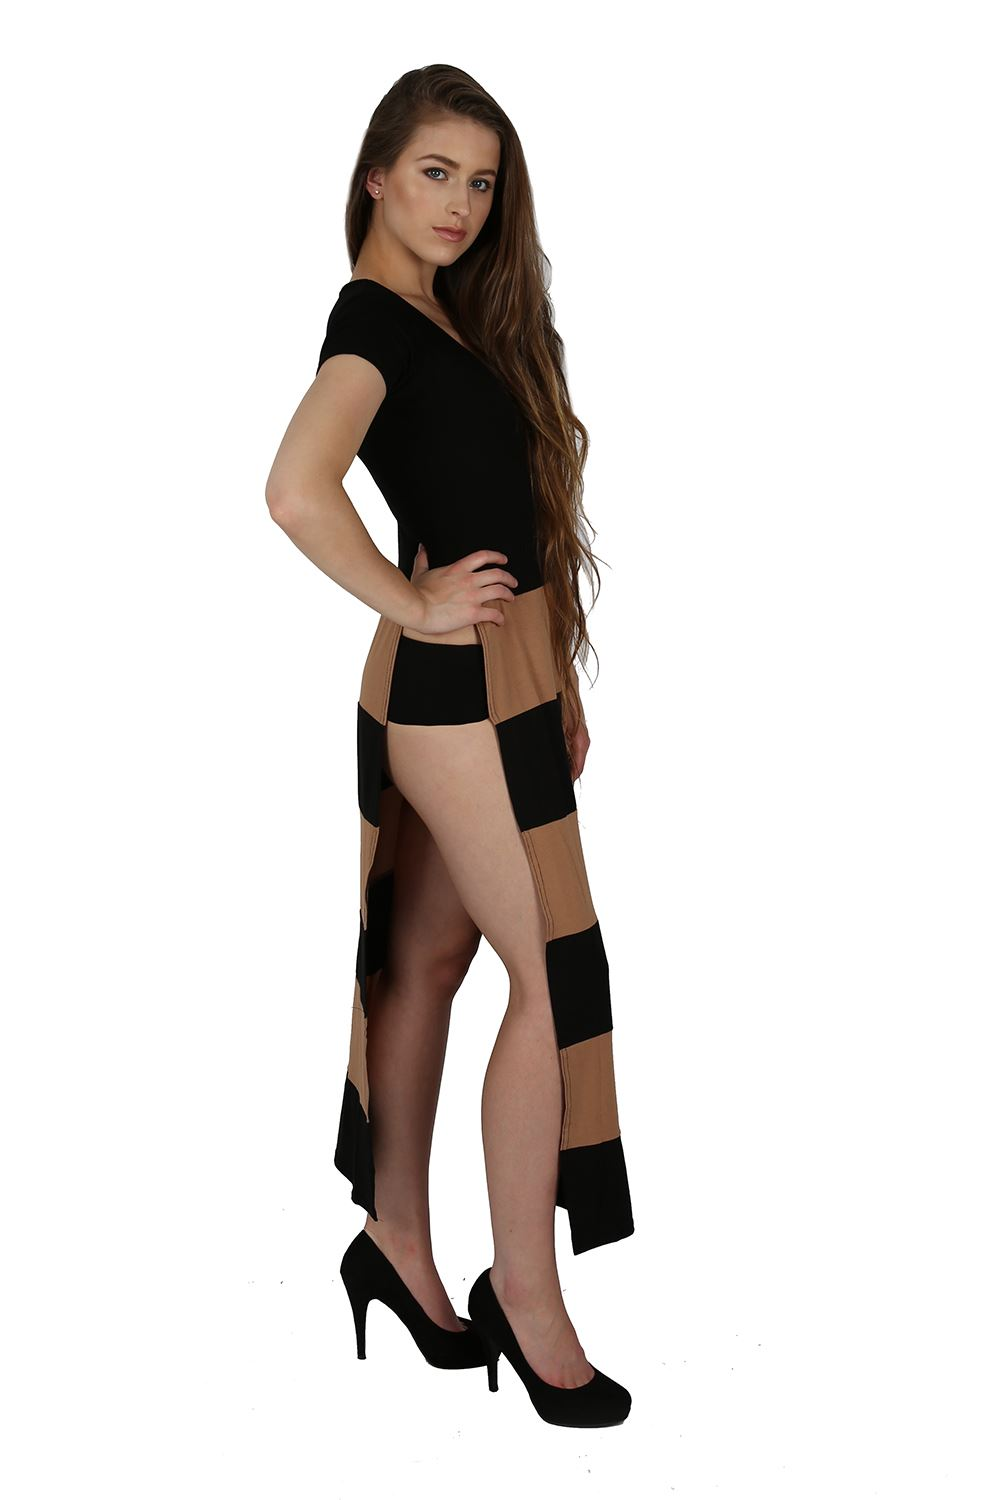 Side Split. Show some skin and turn heads with our selection of super sexy side split looks from lindsayclewisirah.gq The ultimate in statement evening pieces and eye-catching partywear. Just add killer heels to lengthen those pins.